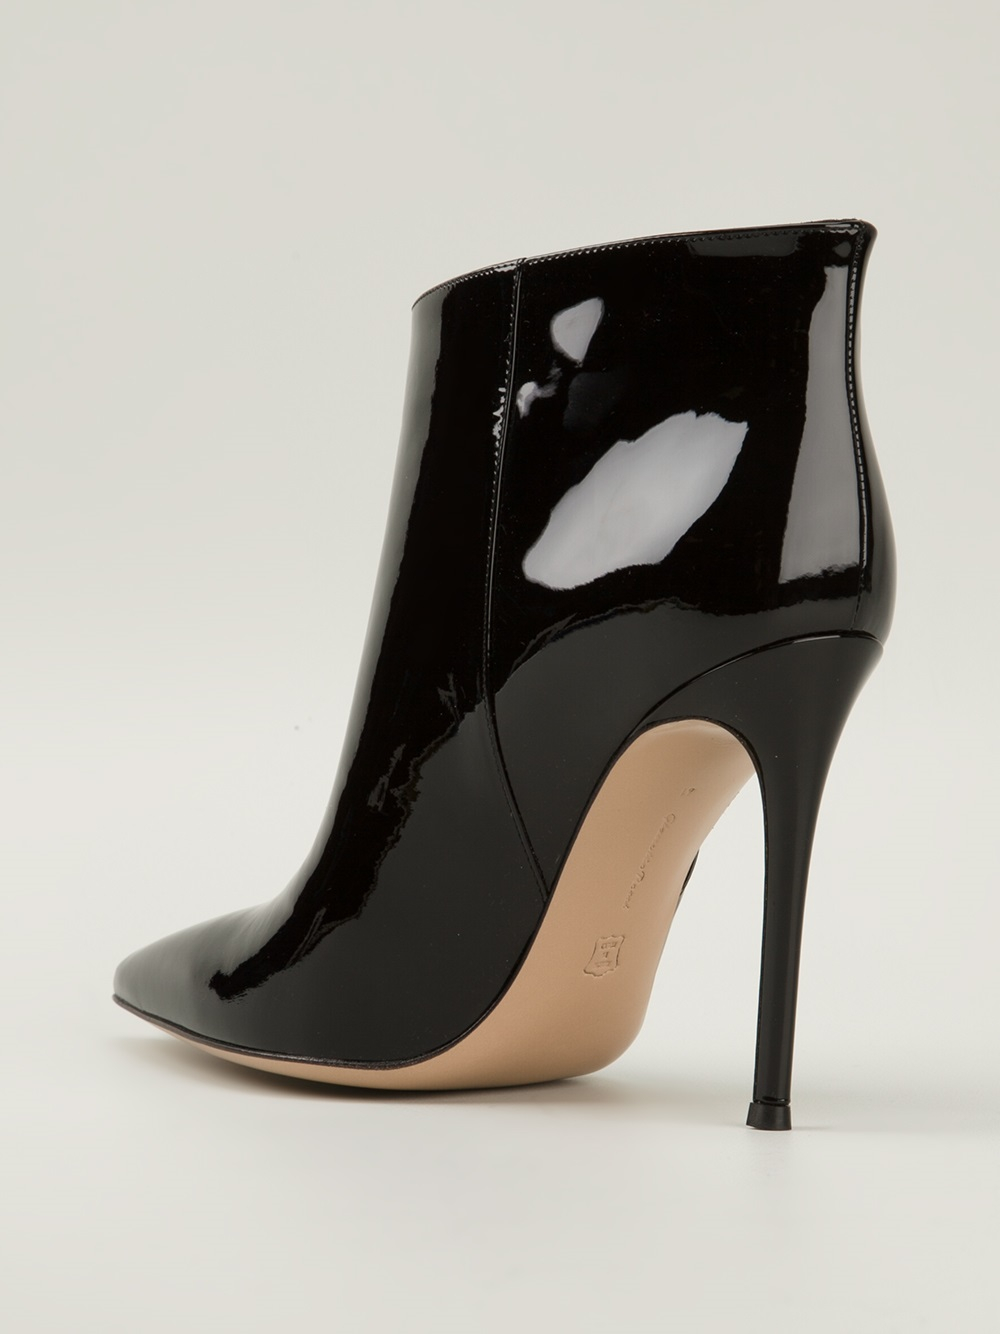 Hogan Shoes Sale Gianvito Rossi 'stilo' Booties In Black | Lyst